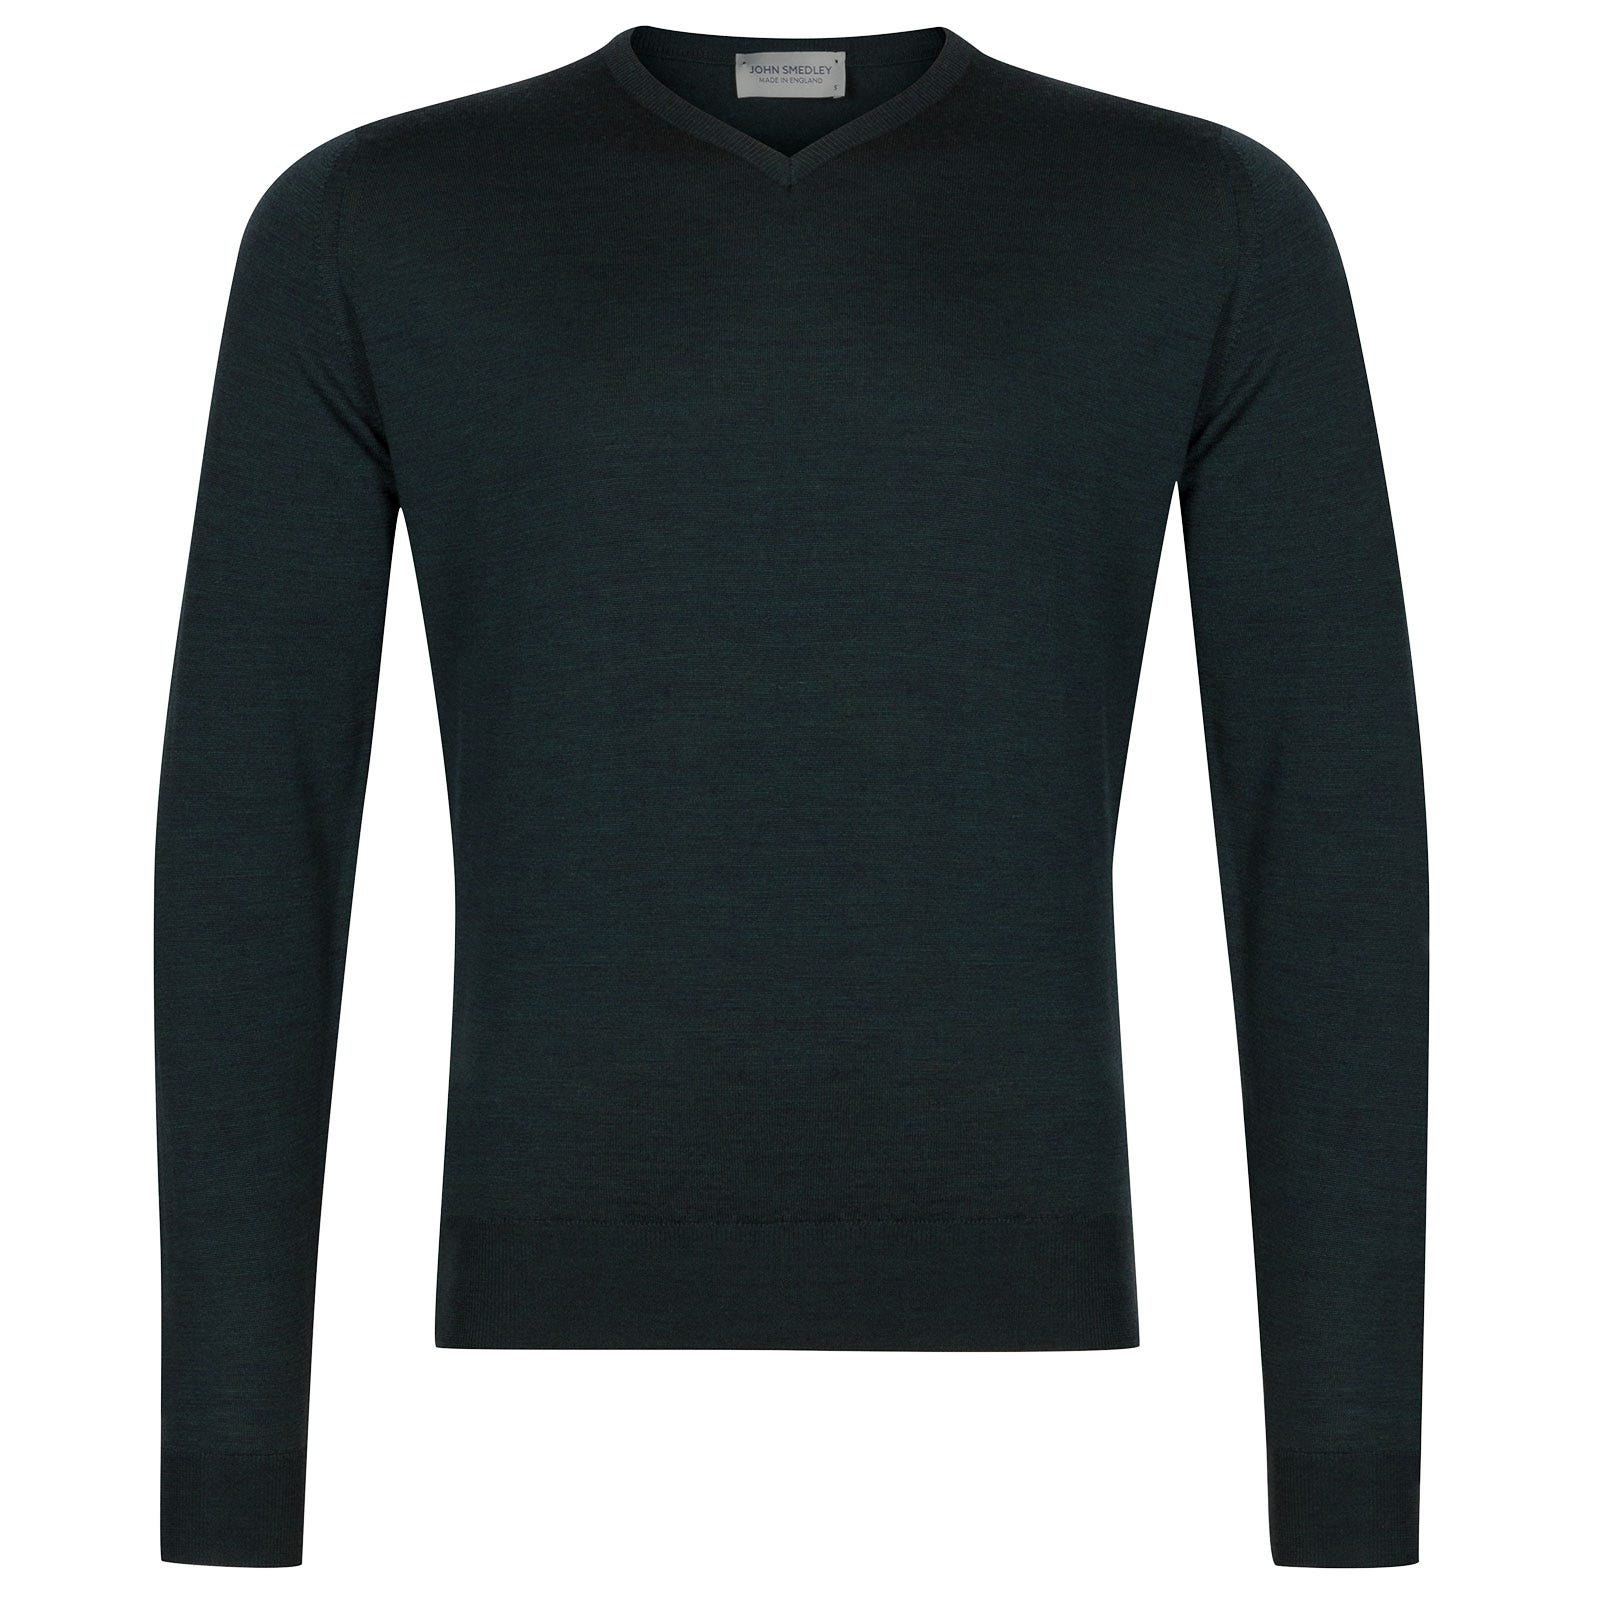 John Smedley Genoa Merino Wool Pullover in Racing Green-XXL